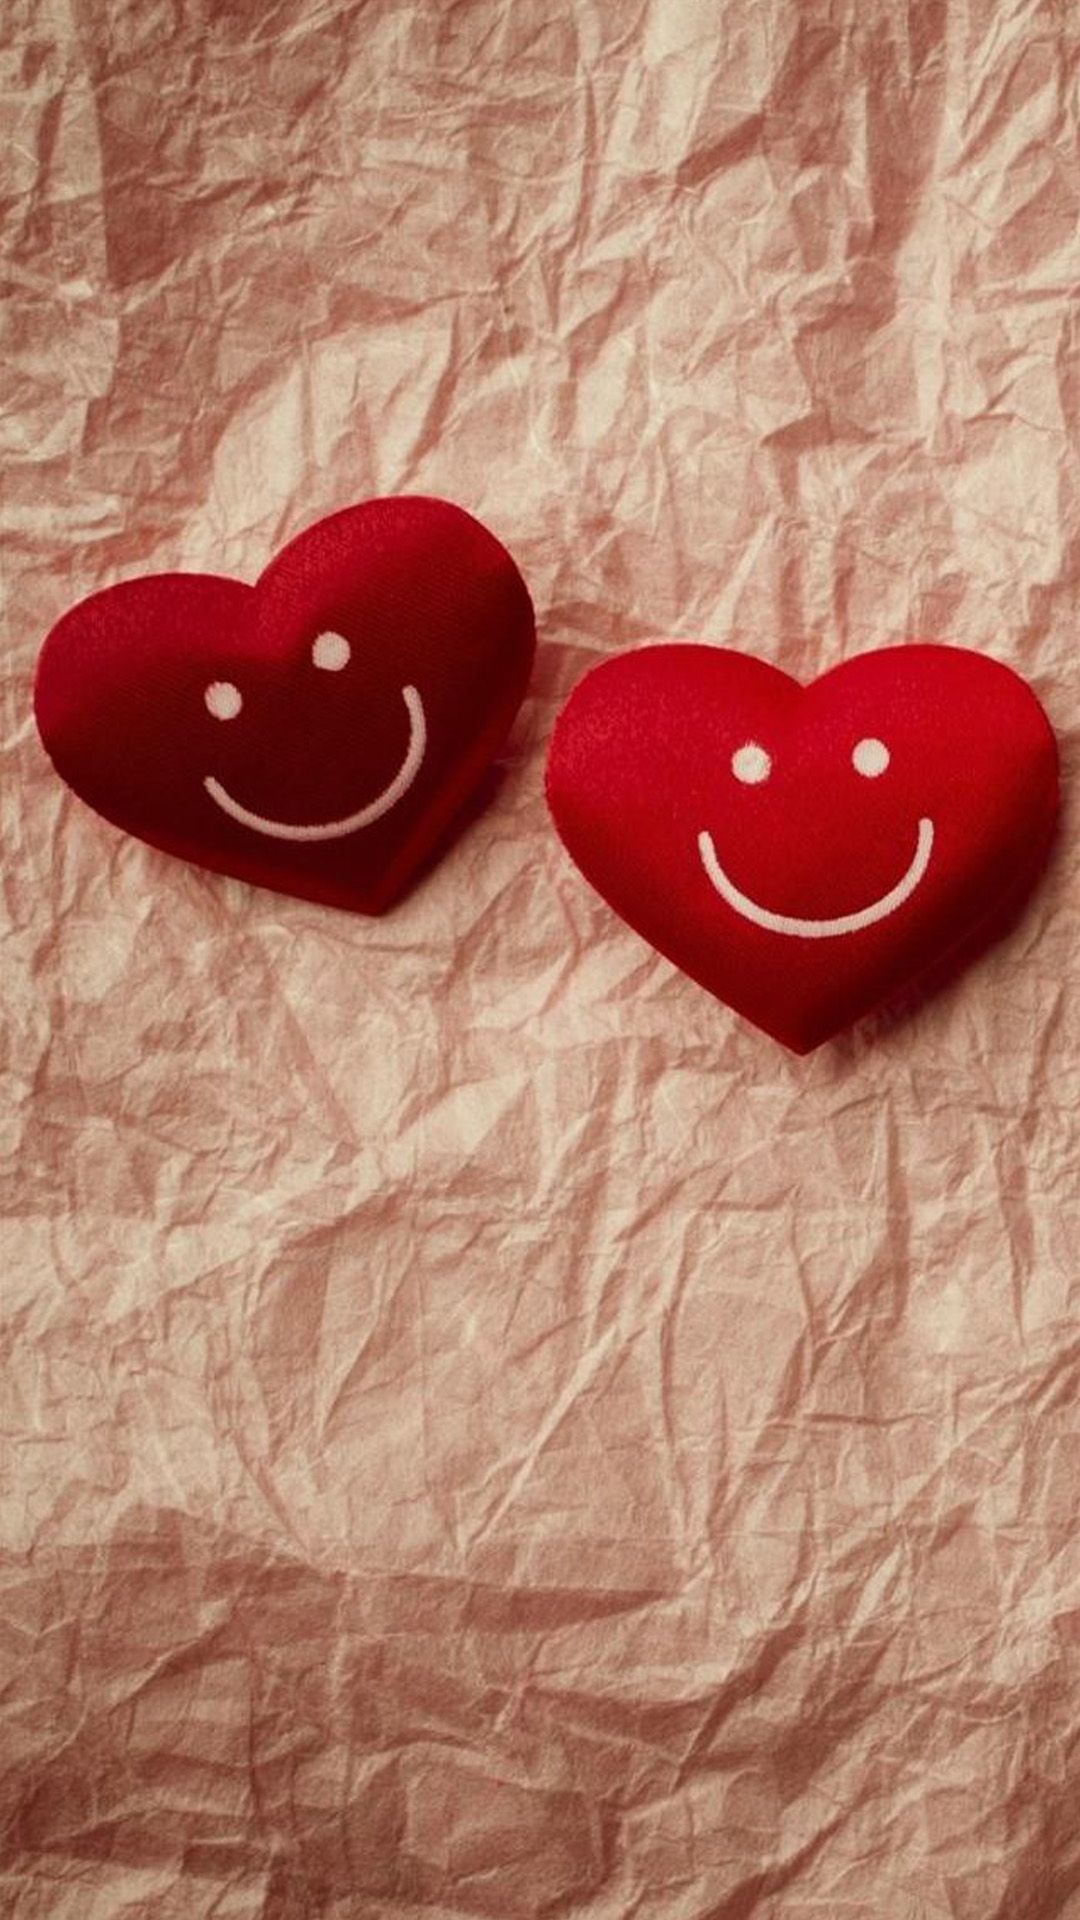 Cute Smile Love Heart Couple Fold Paper Iphone 6 Wallpaper Download Iphone Wallpapers Ipad Android Wallpaper Love Love Wallpaper For Mobile Iphone Wallpaper